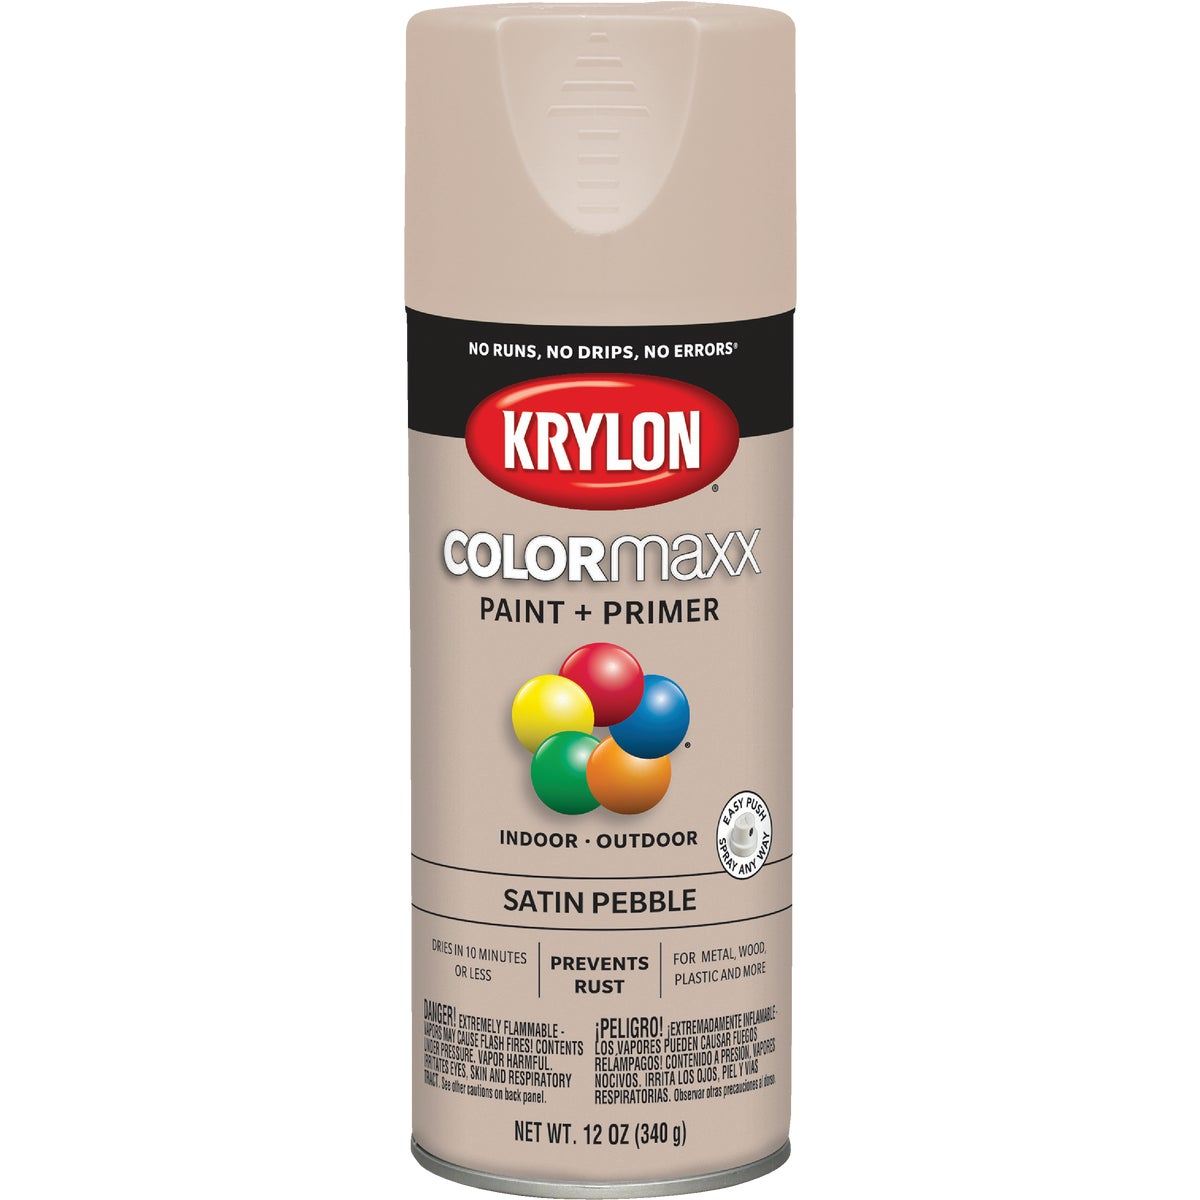 SATIN PEBBLE SPRAY PAINT - 53520 by Krylon/consumer Div